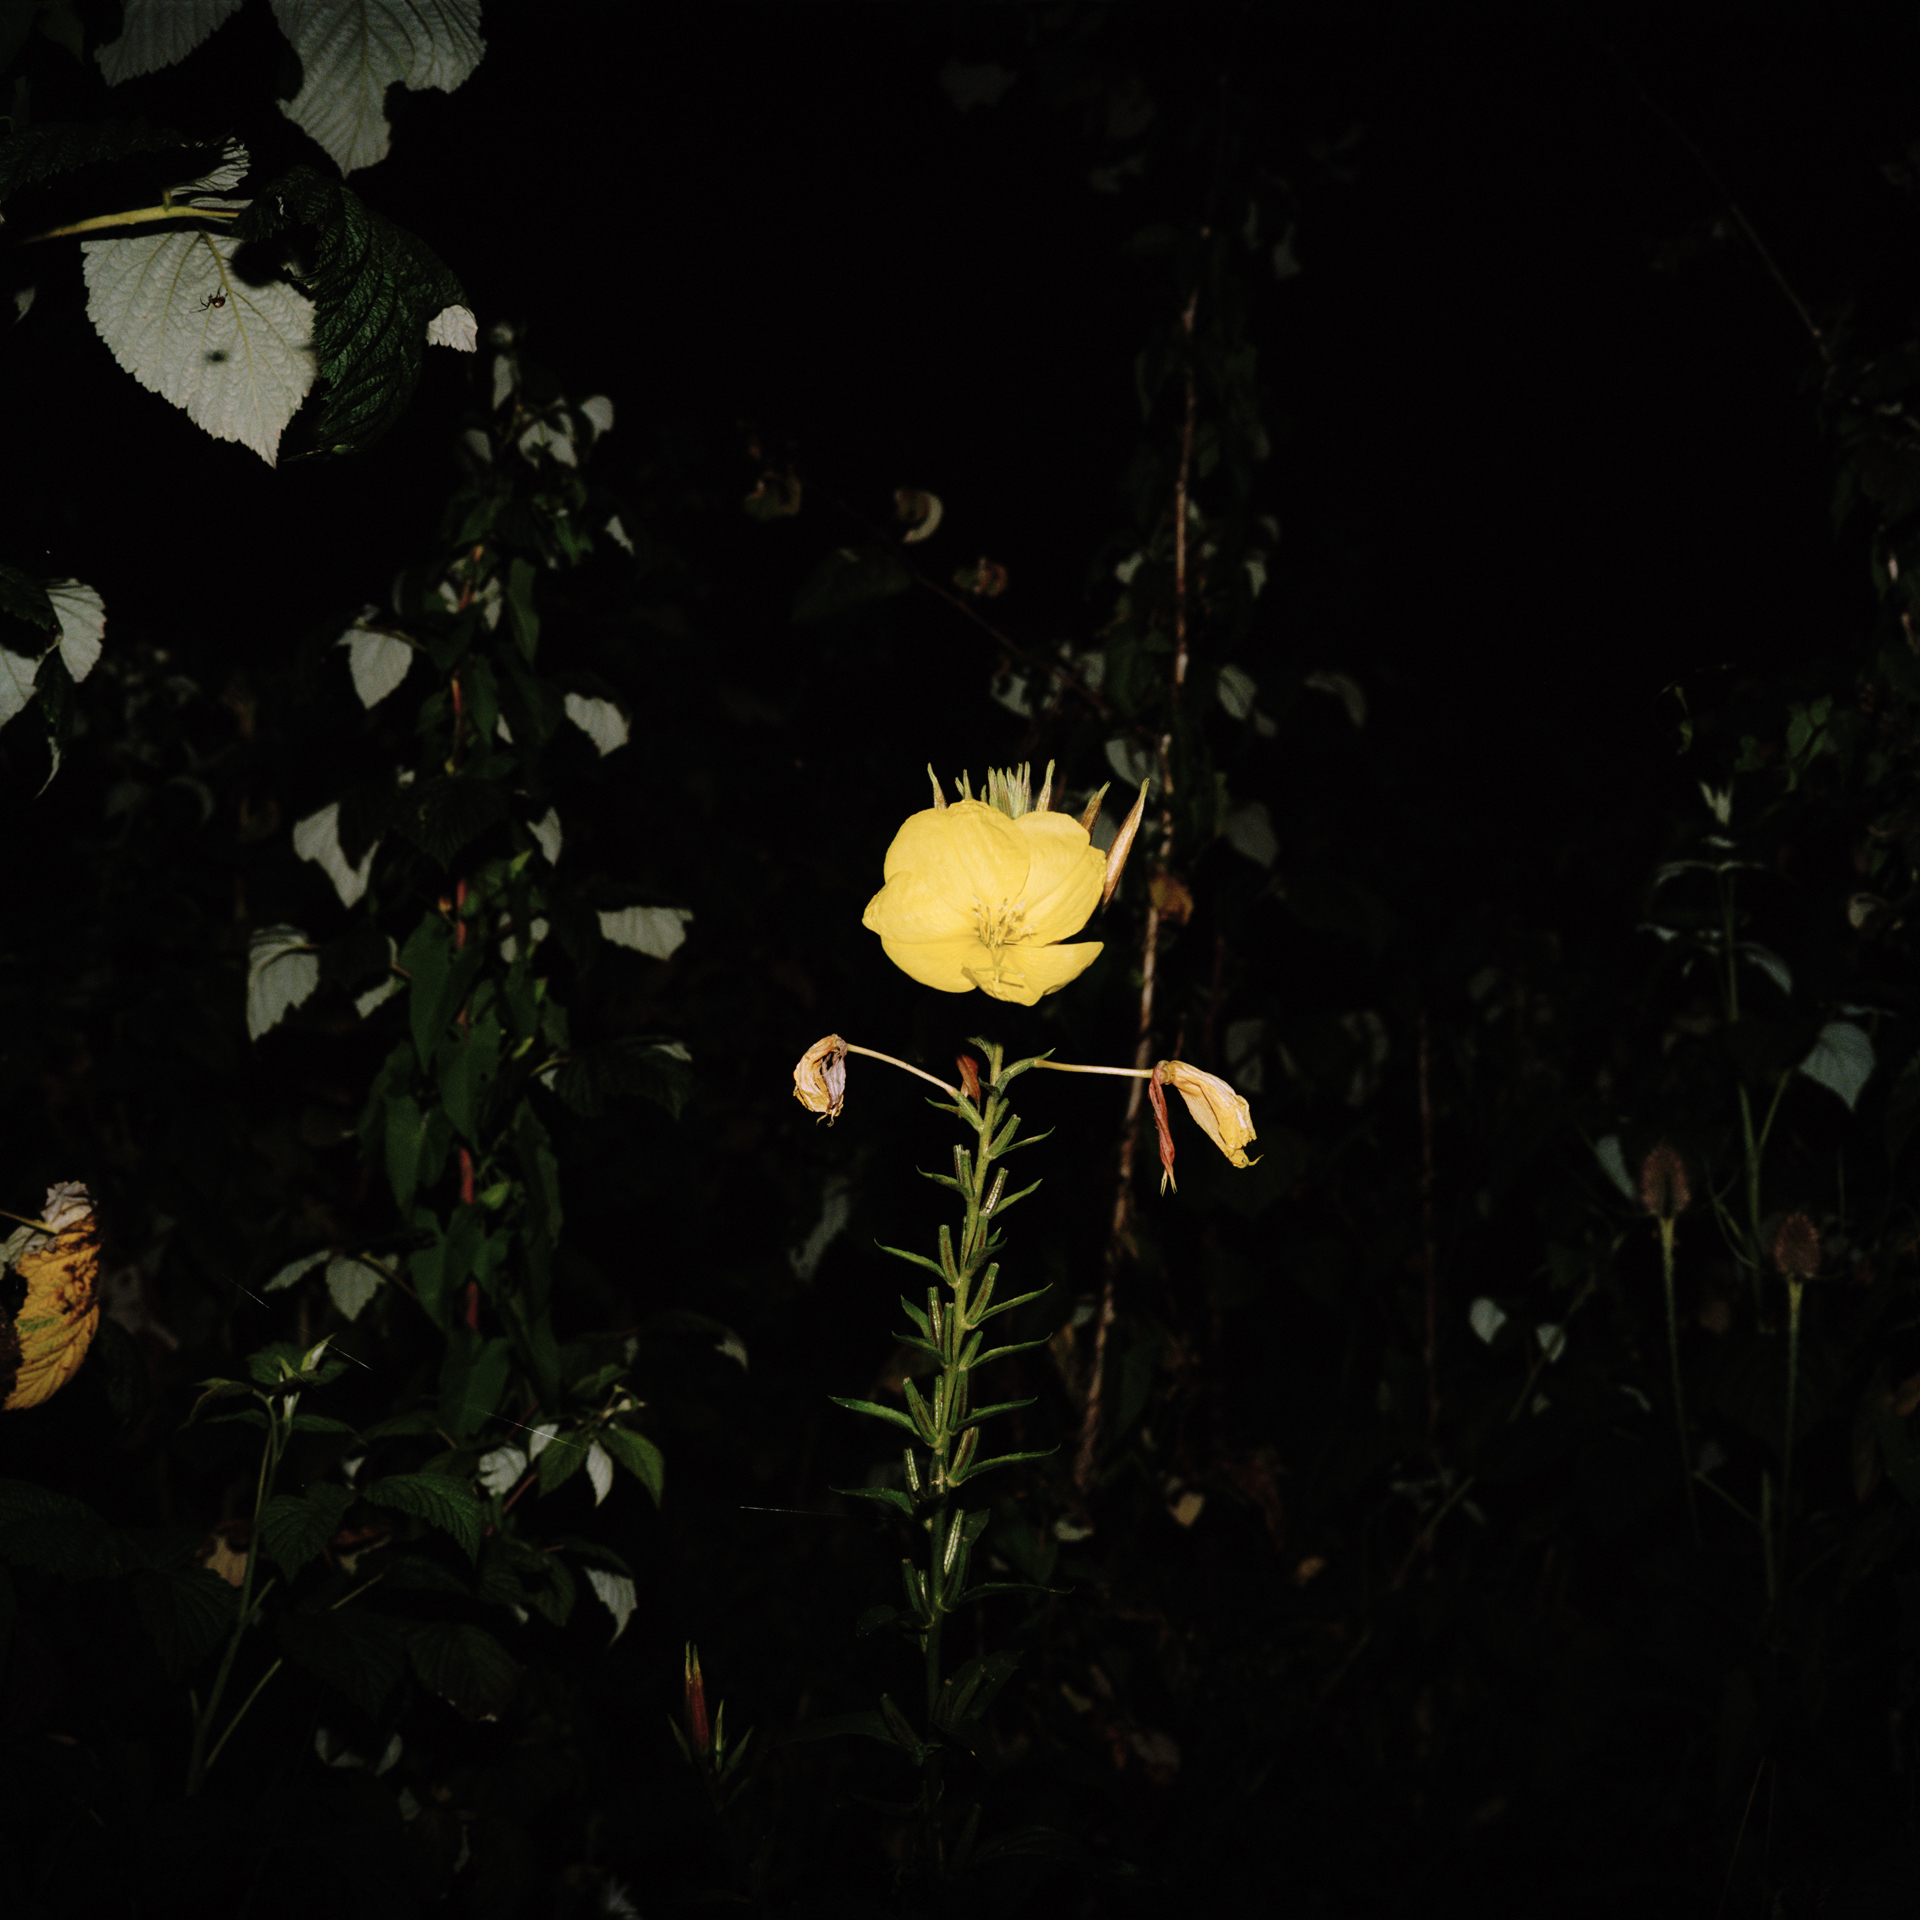 Night Flower 059